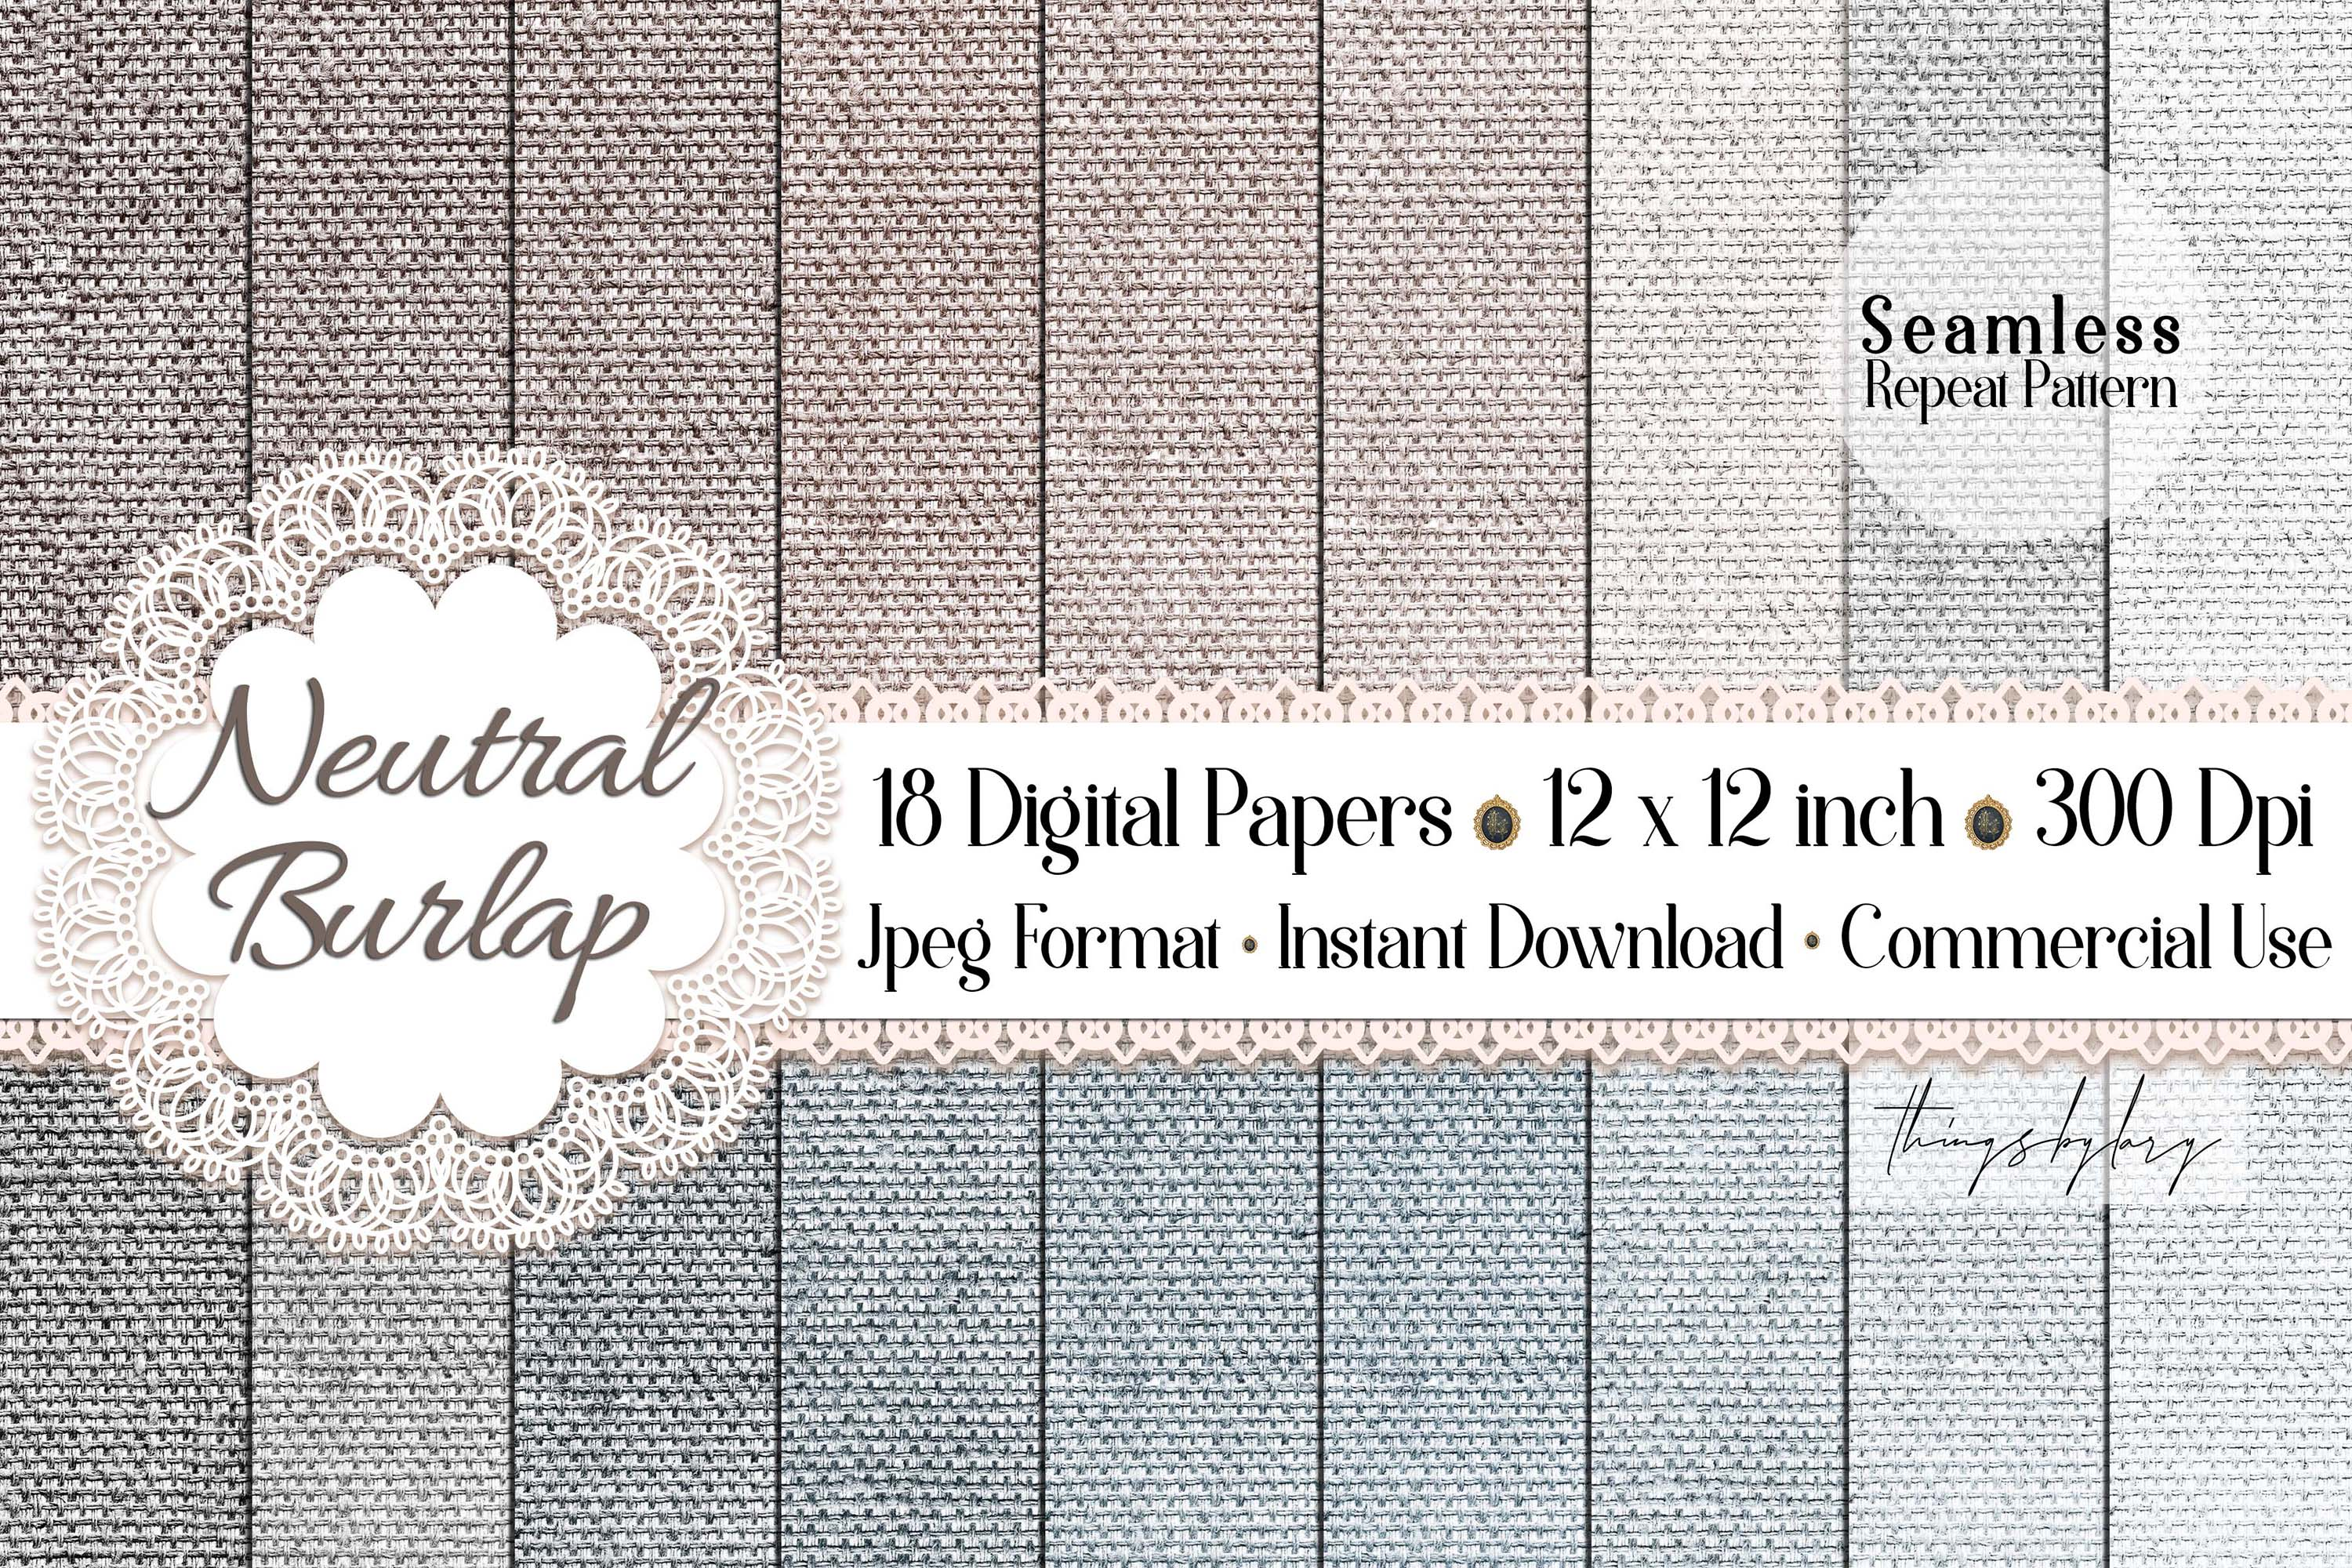 18 Seamless Realistic Neural Linen Burlap Digital Papers example image 1